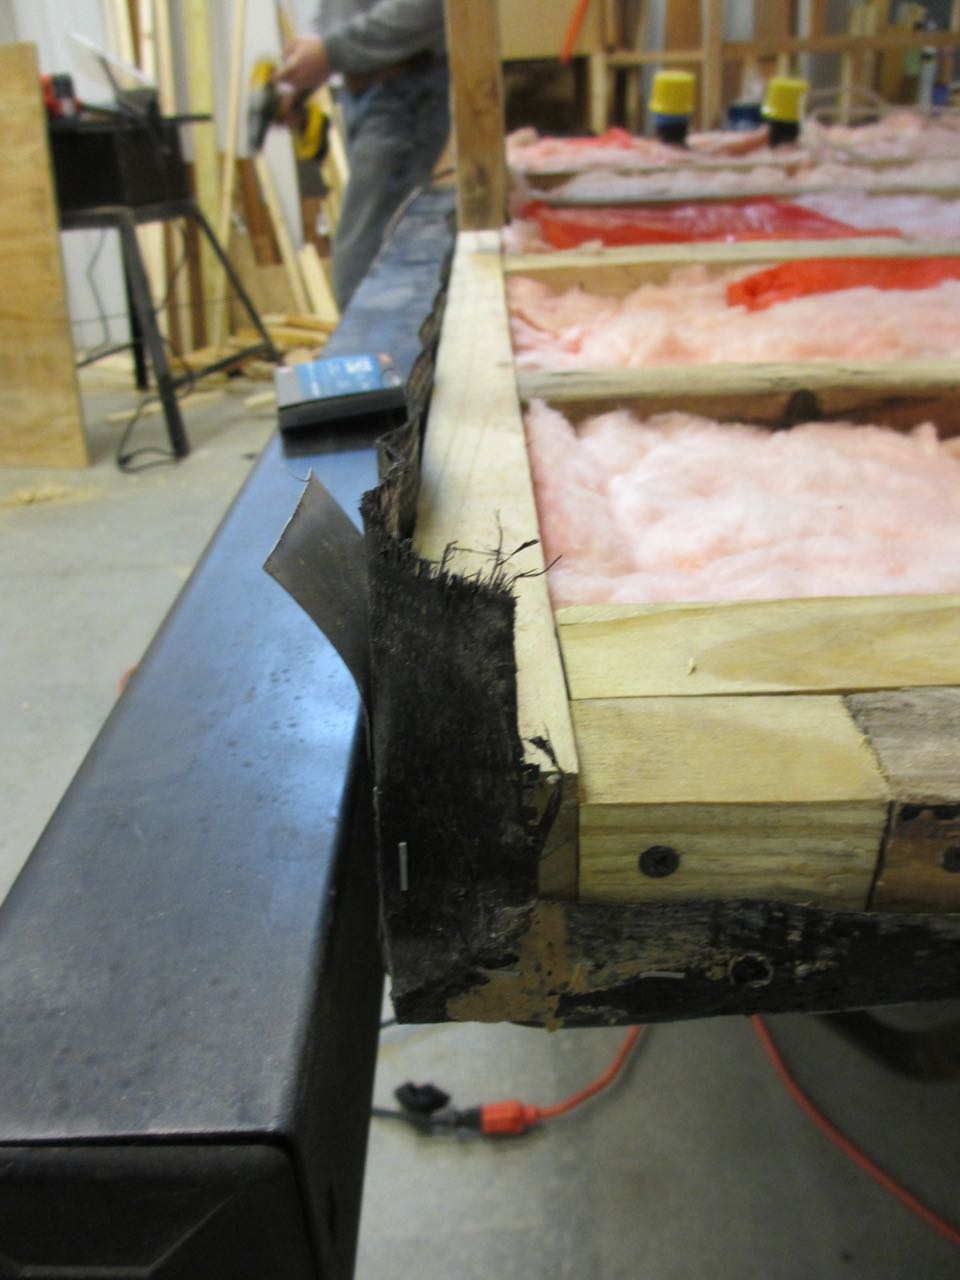 We stapled the underbelly wrap to get the beams ready for the sub-floor.